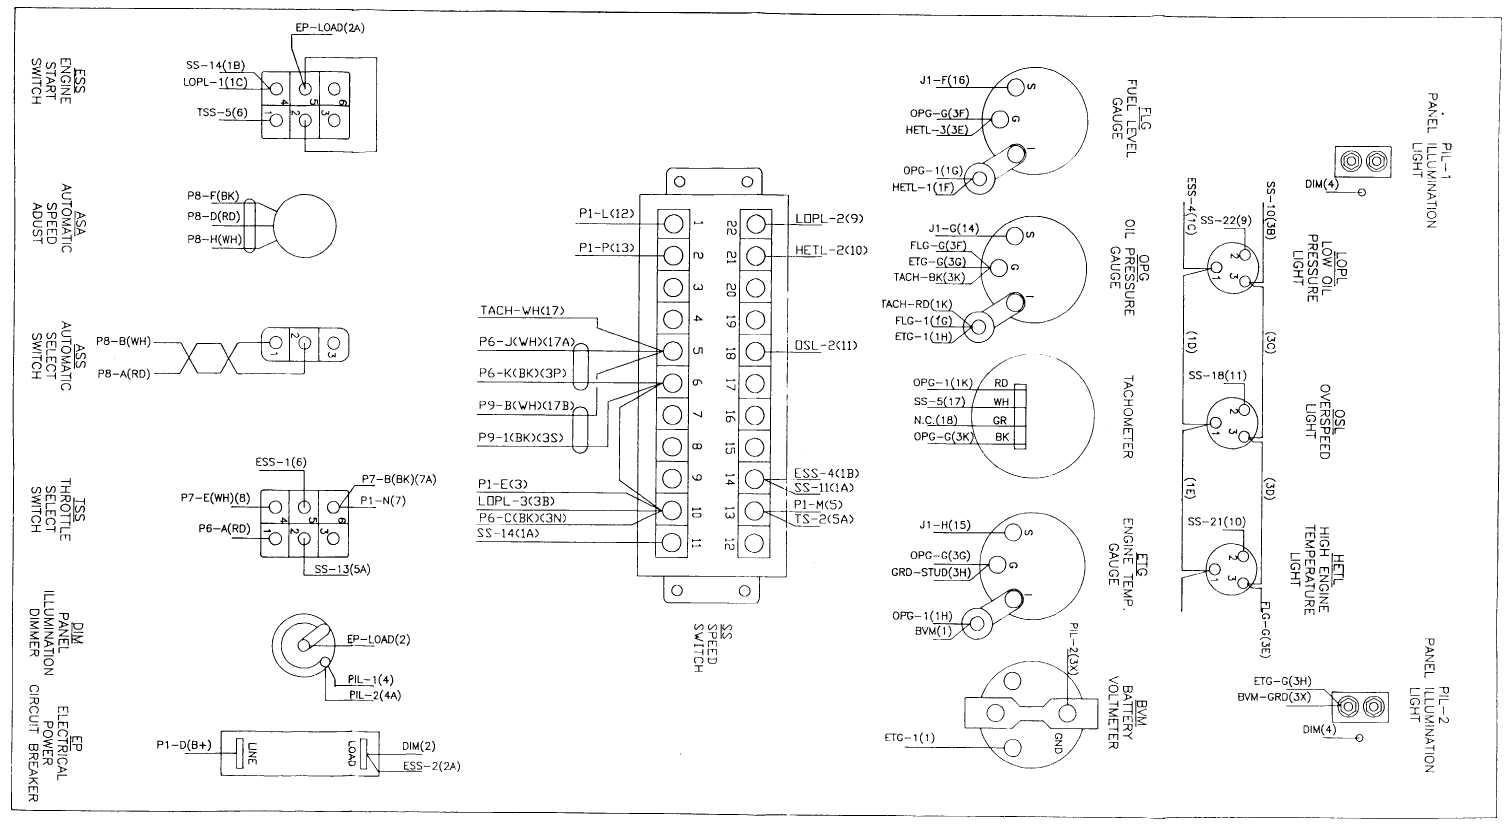 Hvac Control Panel Diagram Trusted Wiring Diagrams Basic Guide U2022 Commercial System